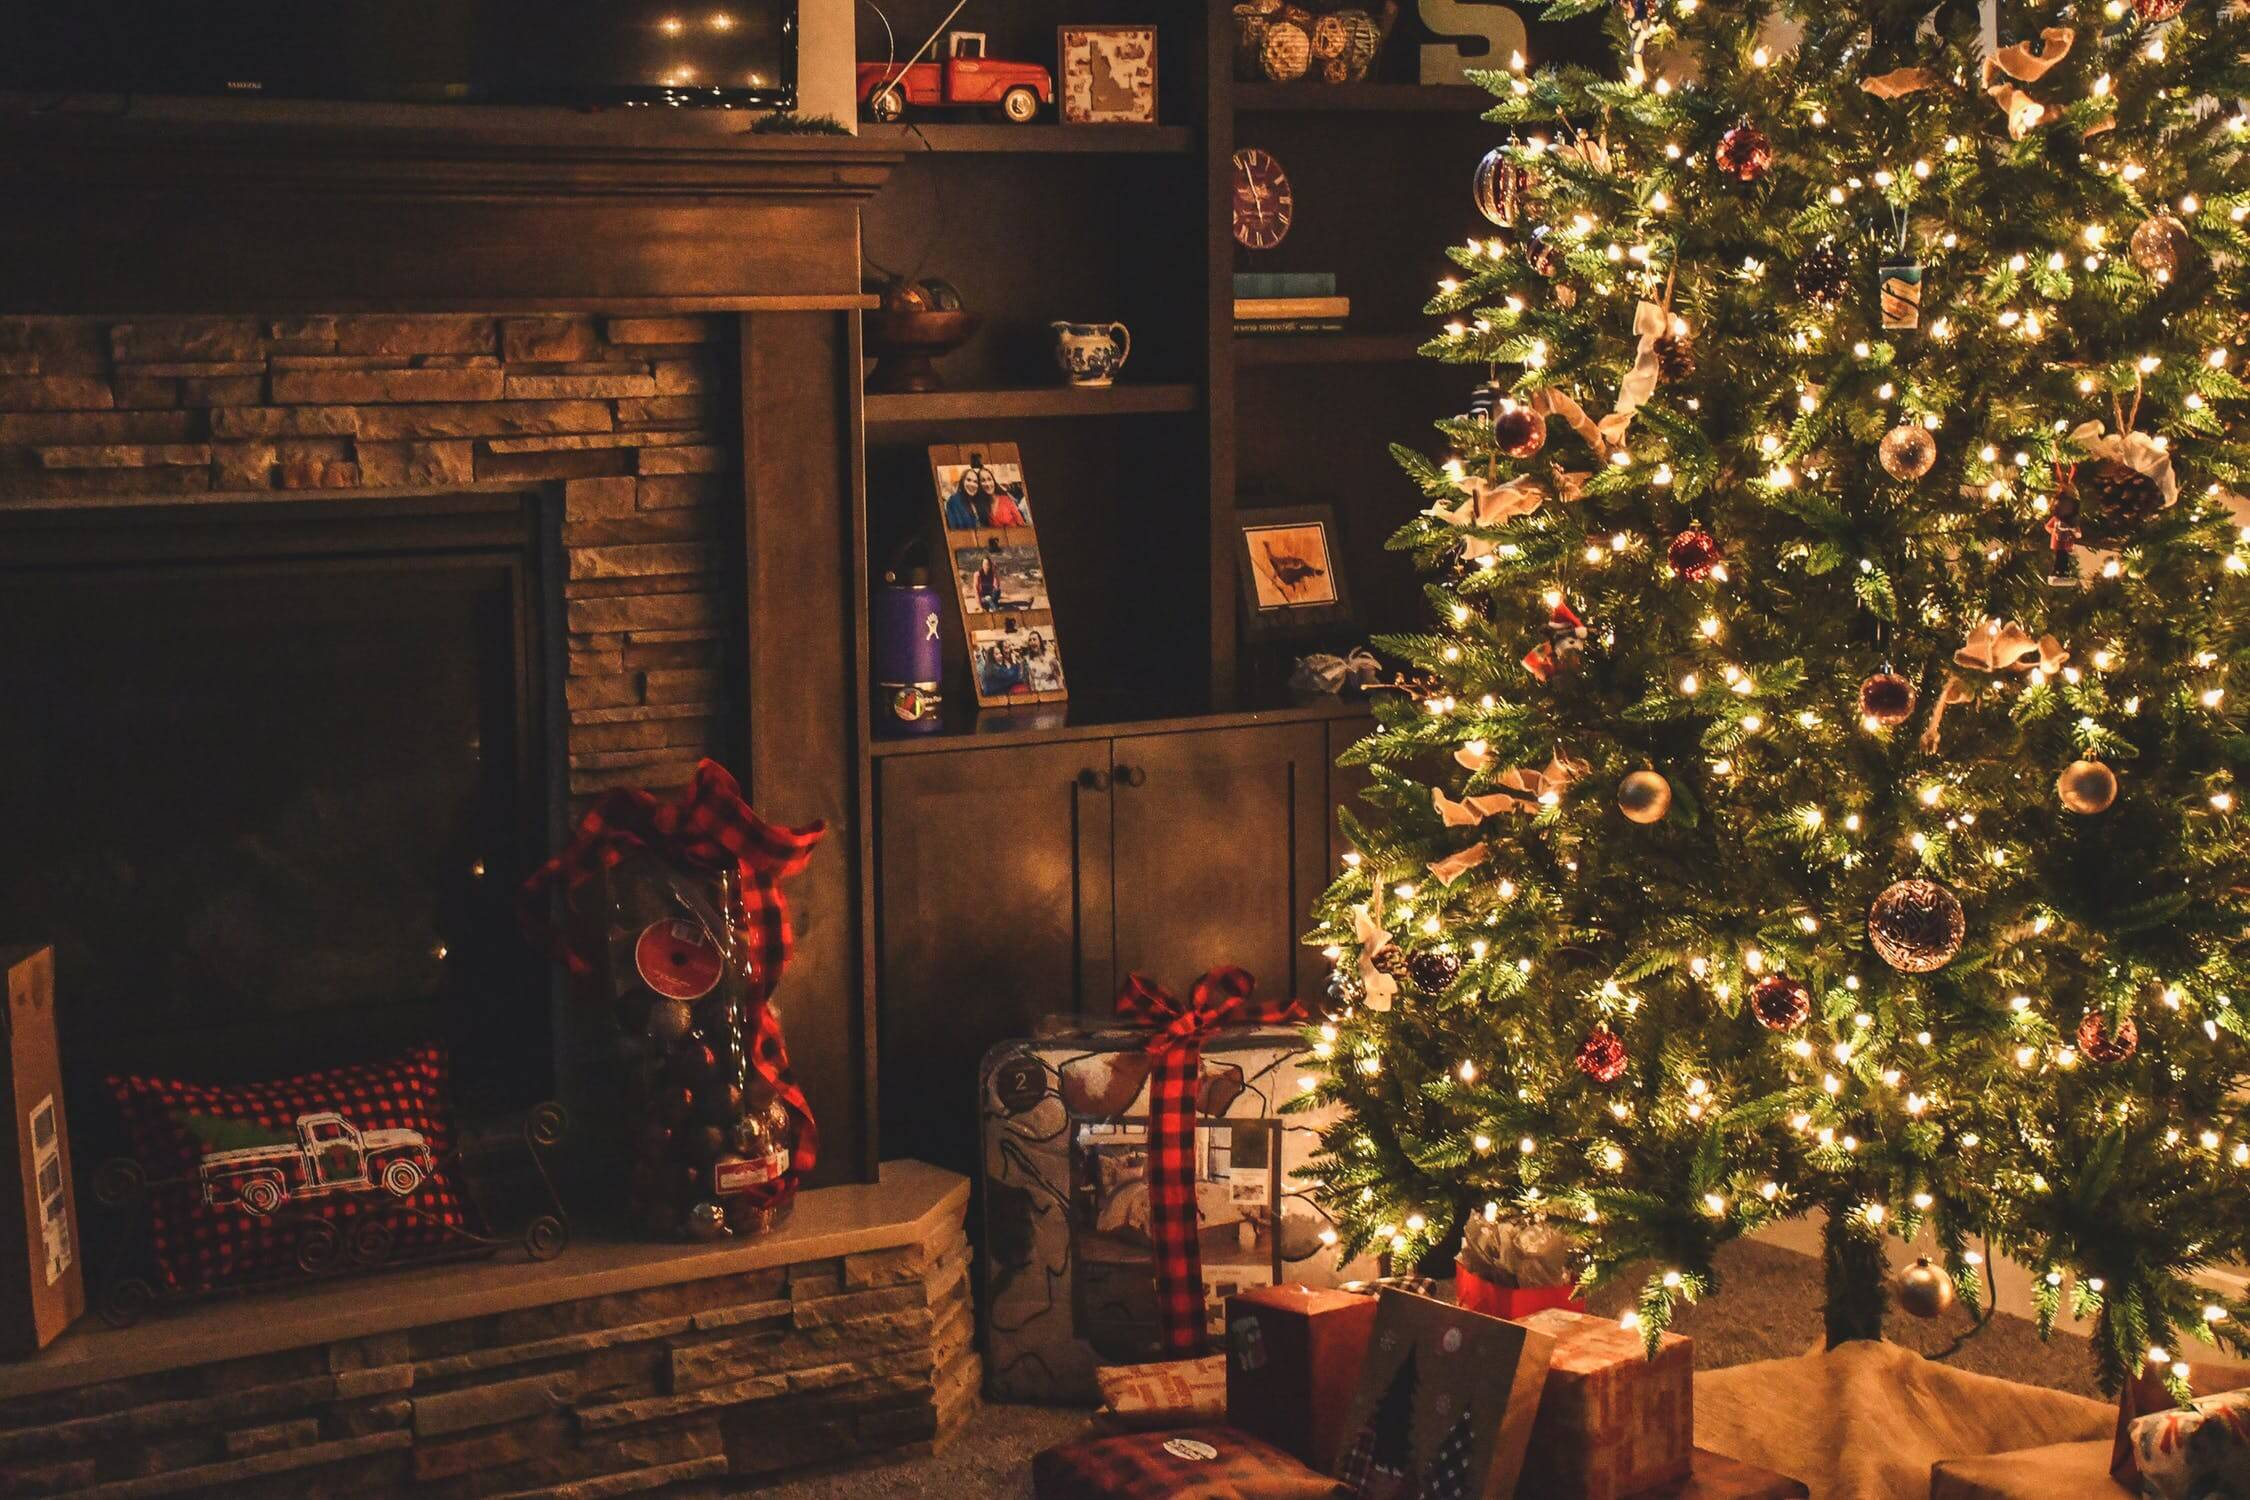 Presents under a Christmas tree. There are many holiday gifts for seniors that are great presents.